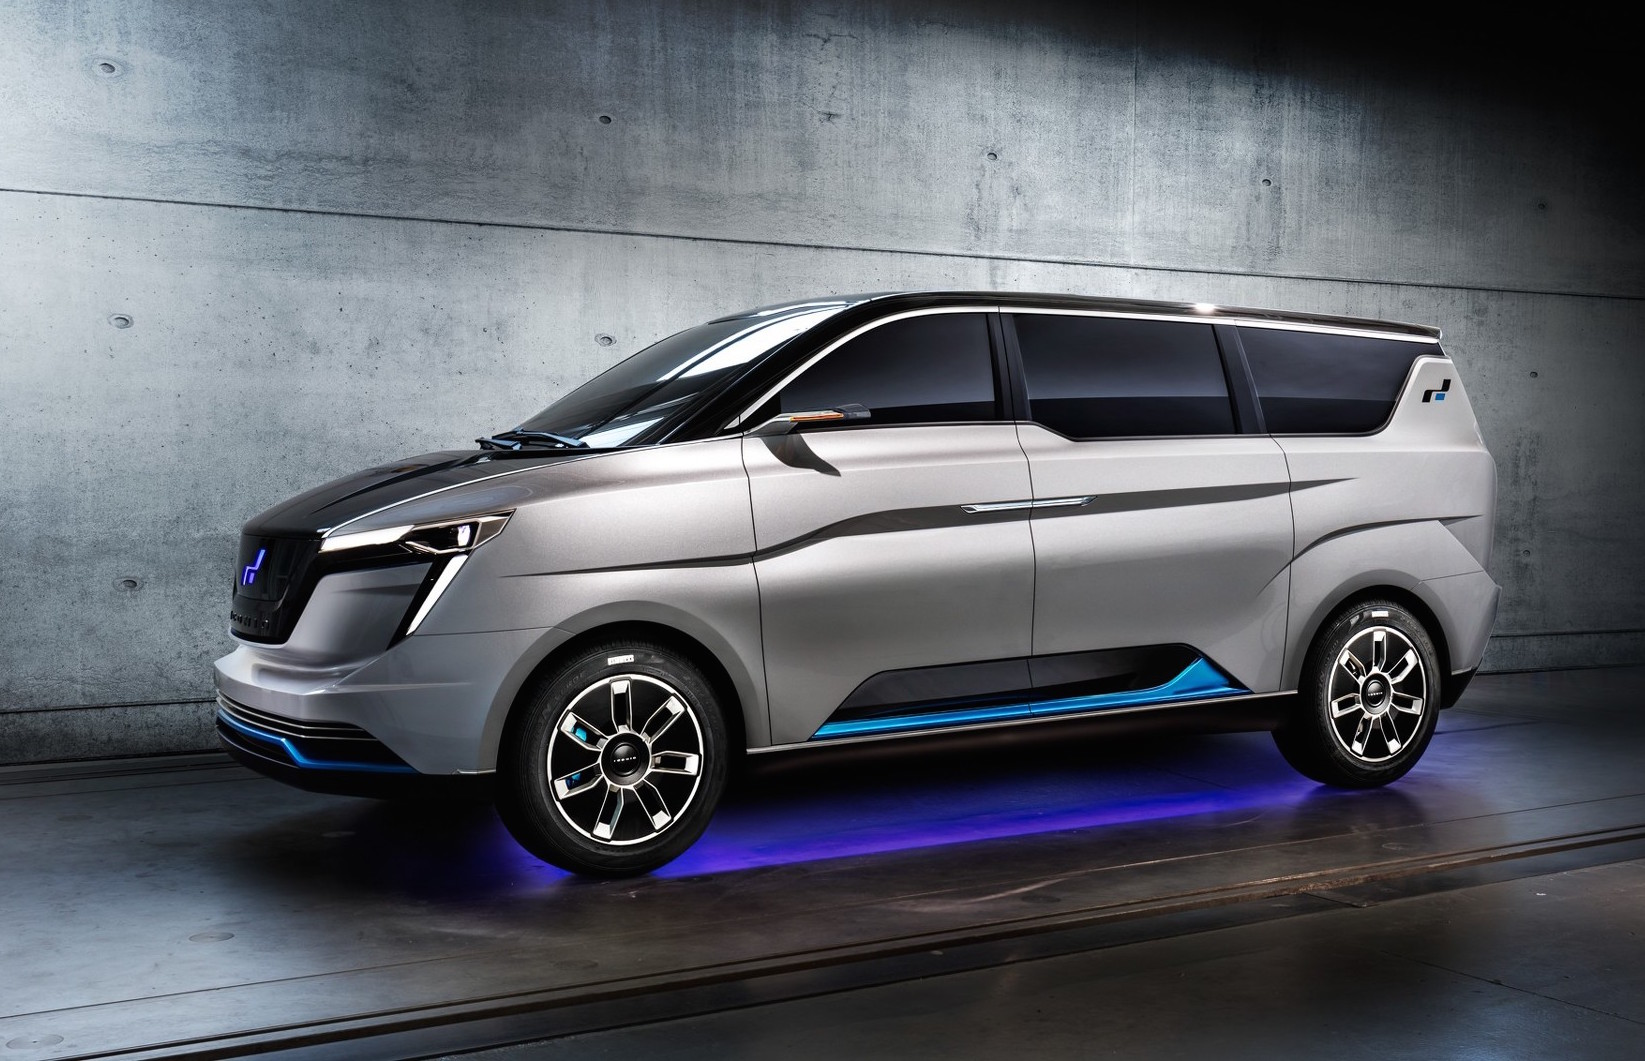 Lykan Hypersport Car >> W Motors reveals ICONIQ Seven EV minibus | PerformanceDrive